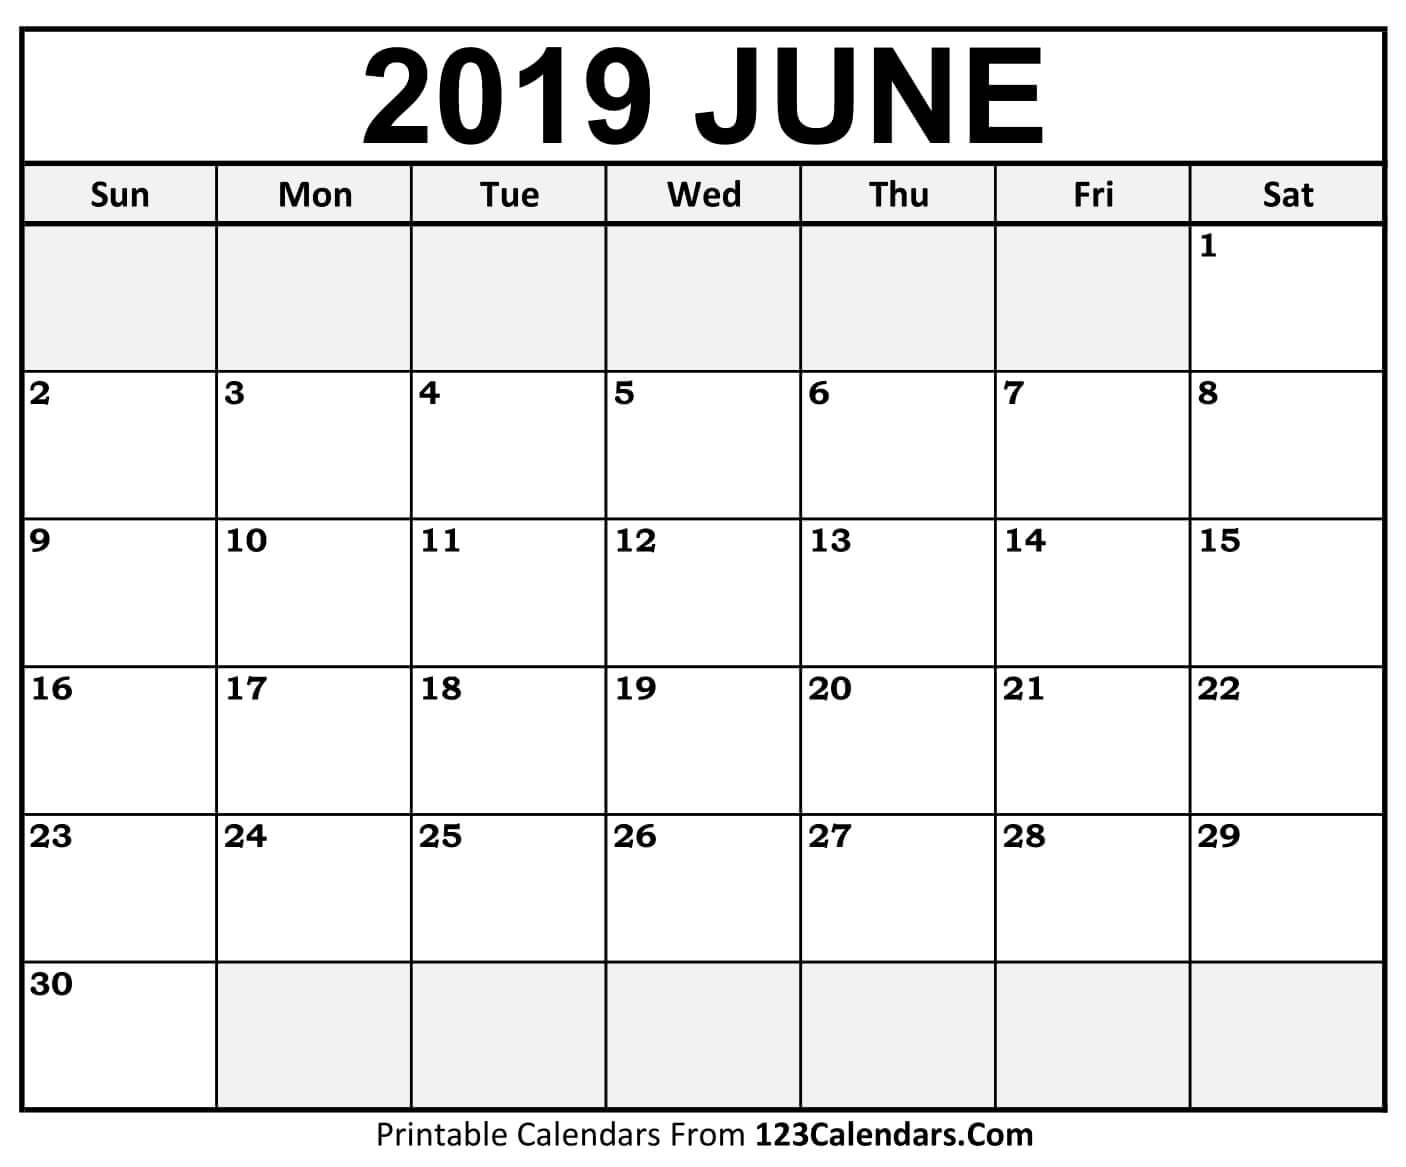 Calendar Of June.Free Printable Calendar Of June 2019 Blank Templates Word